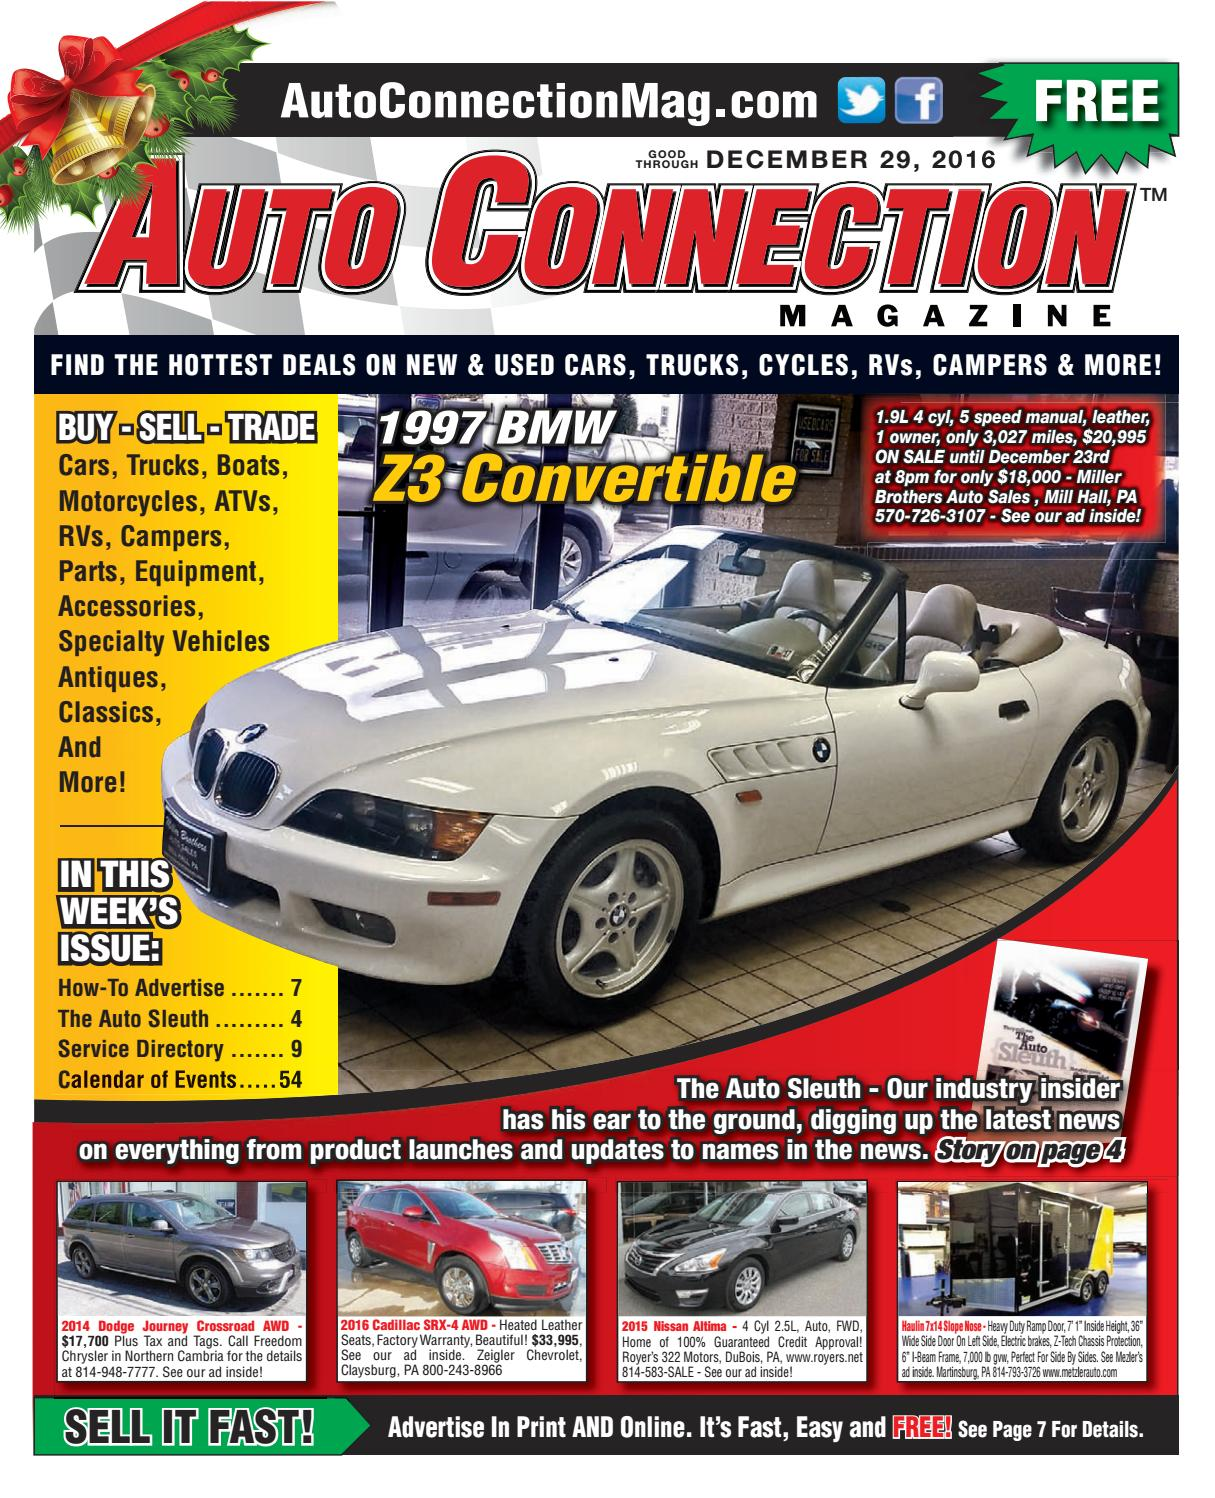 12-29-16 Auto Connection Magazine by Auto Connection Magazine - issuu